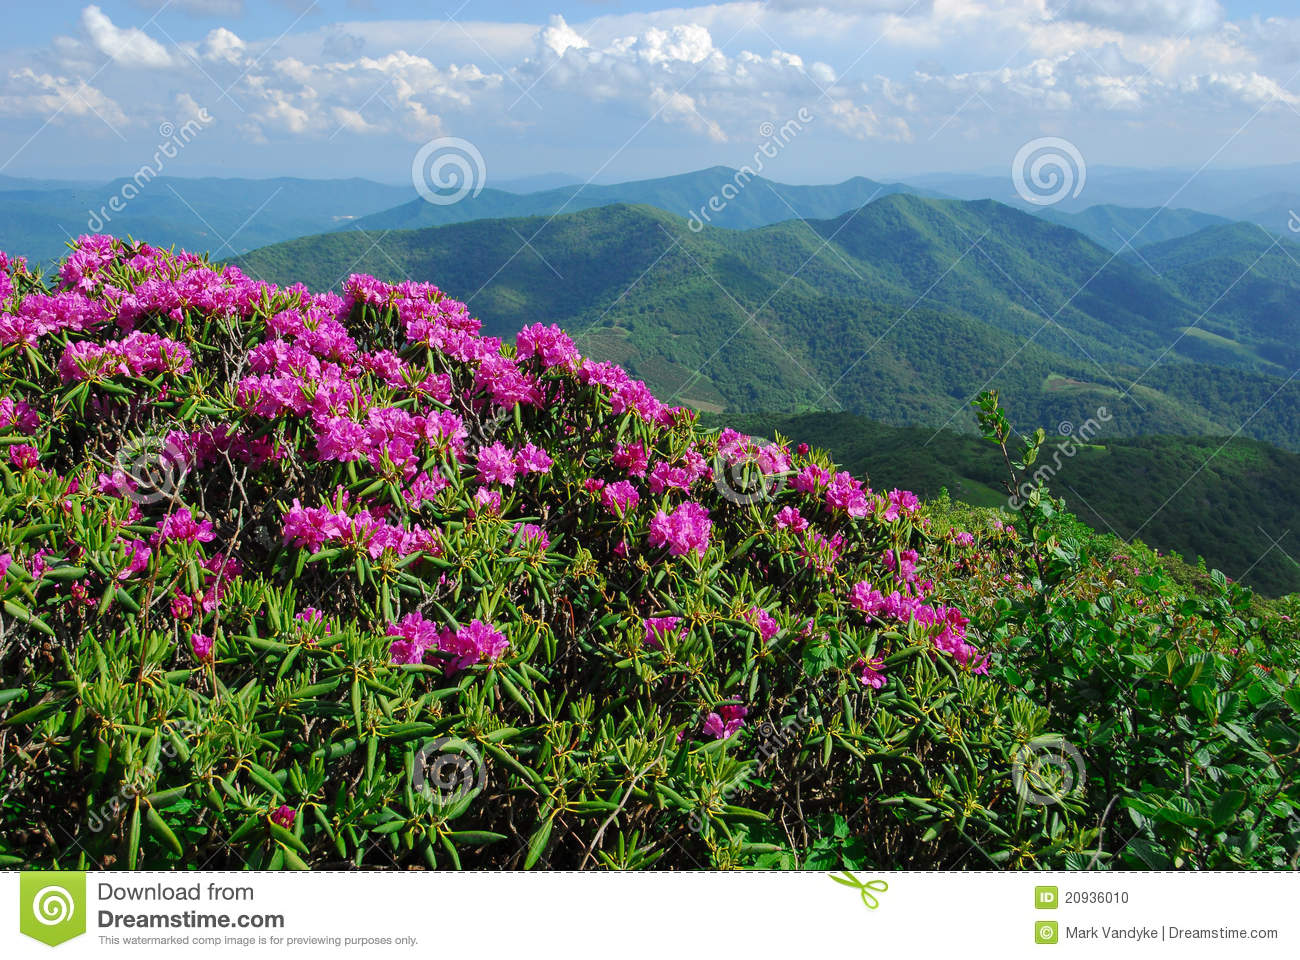 North Carolina Mountains and Wildflowers